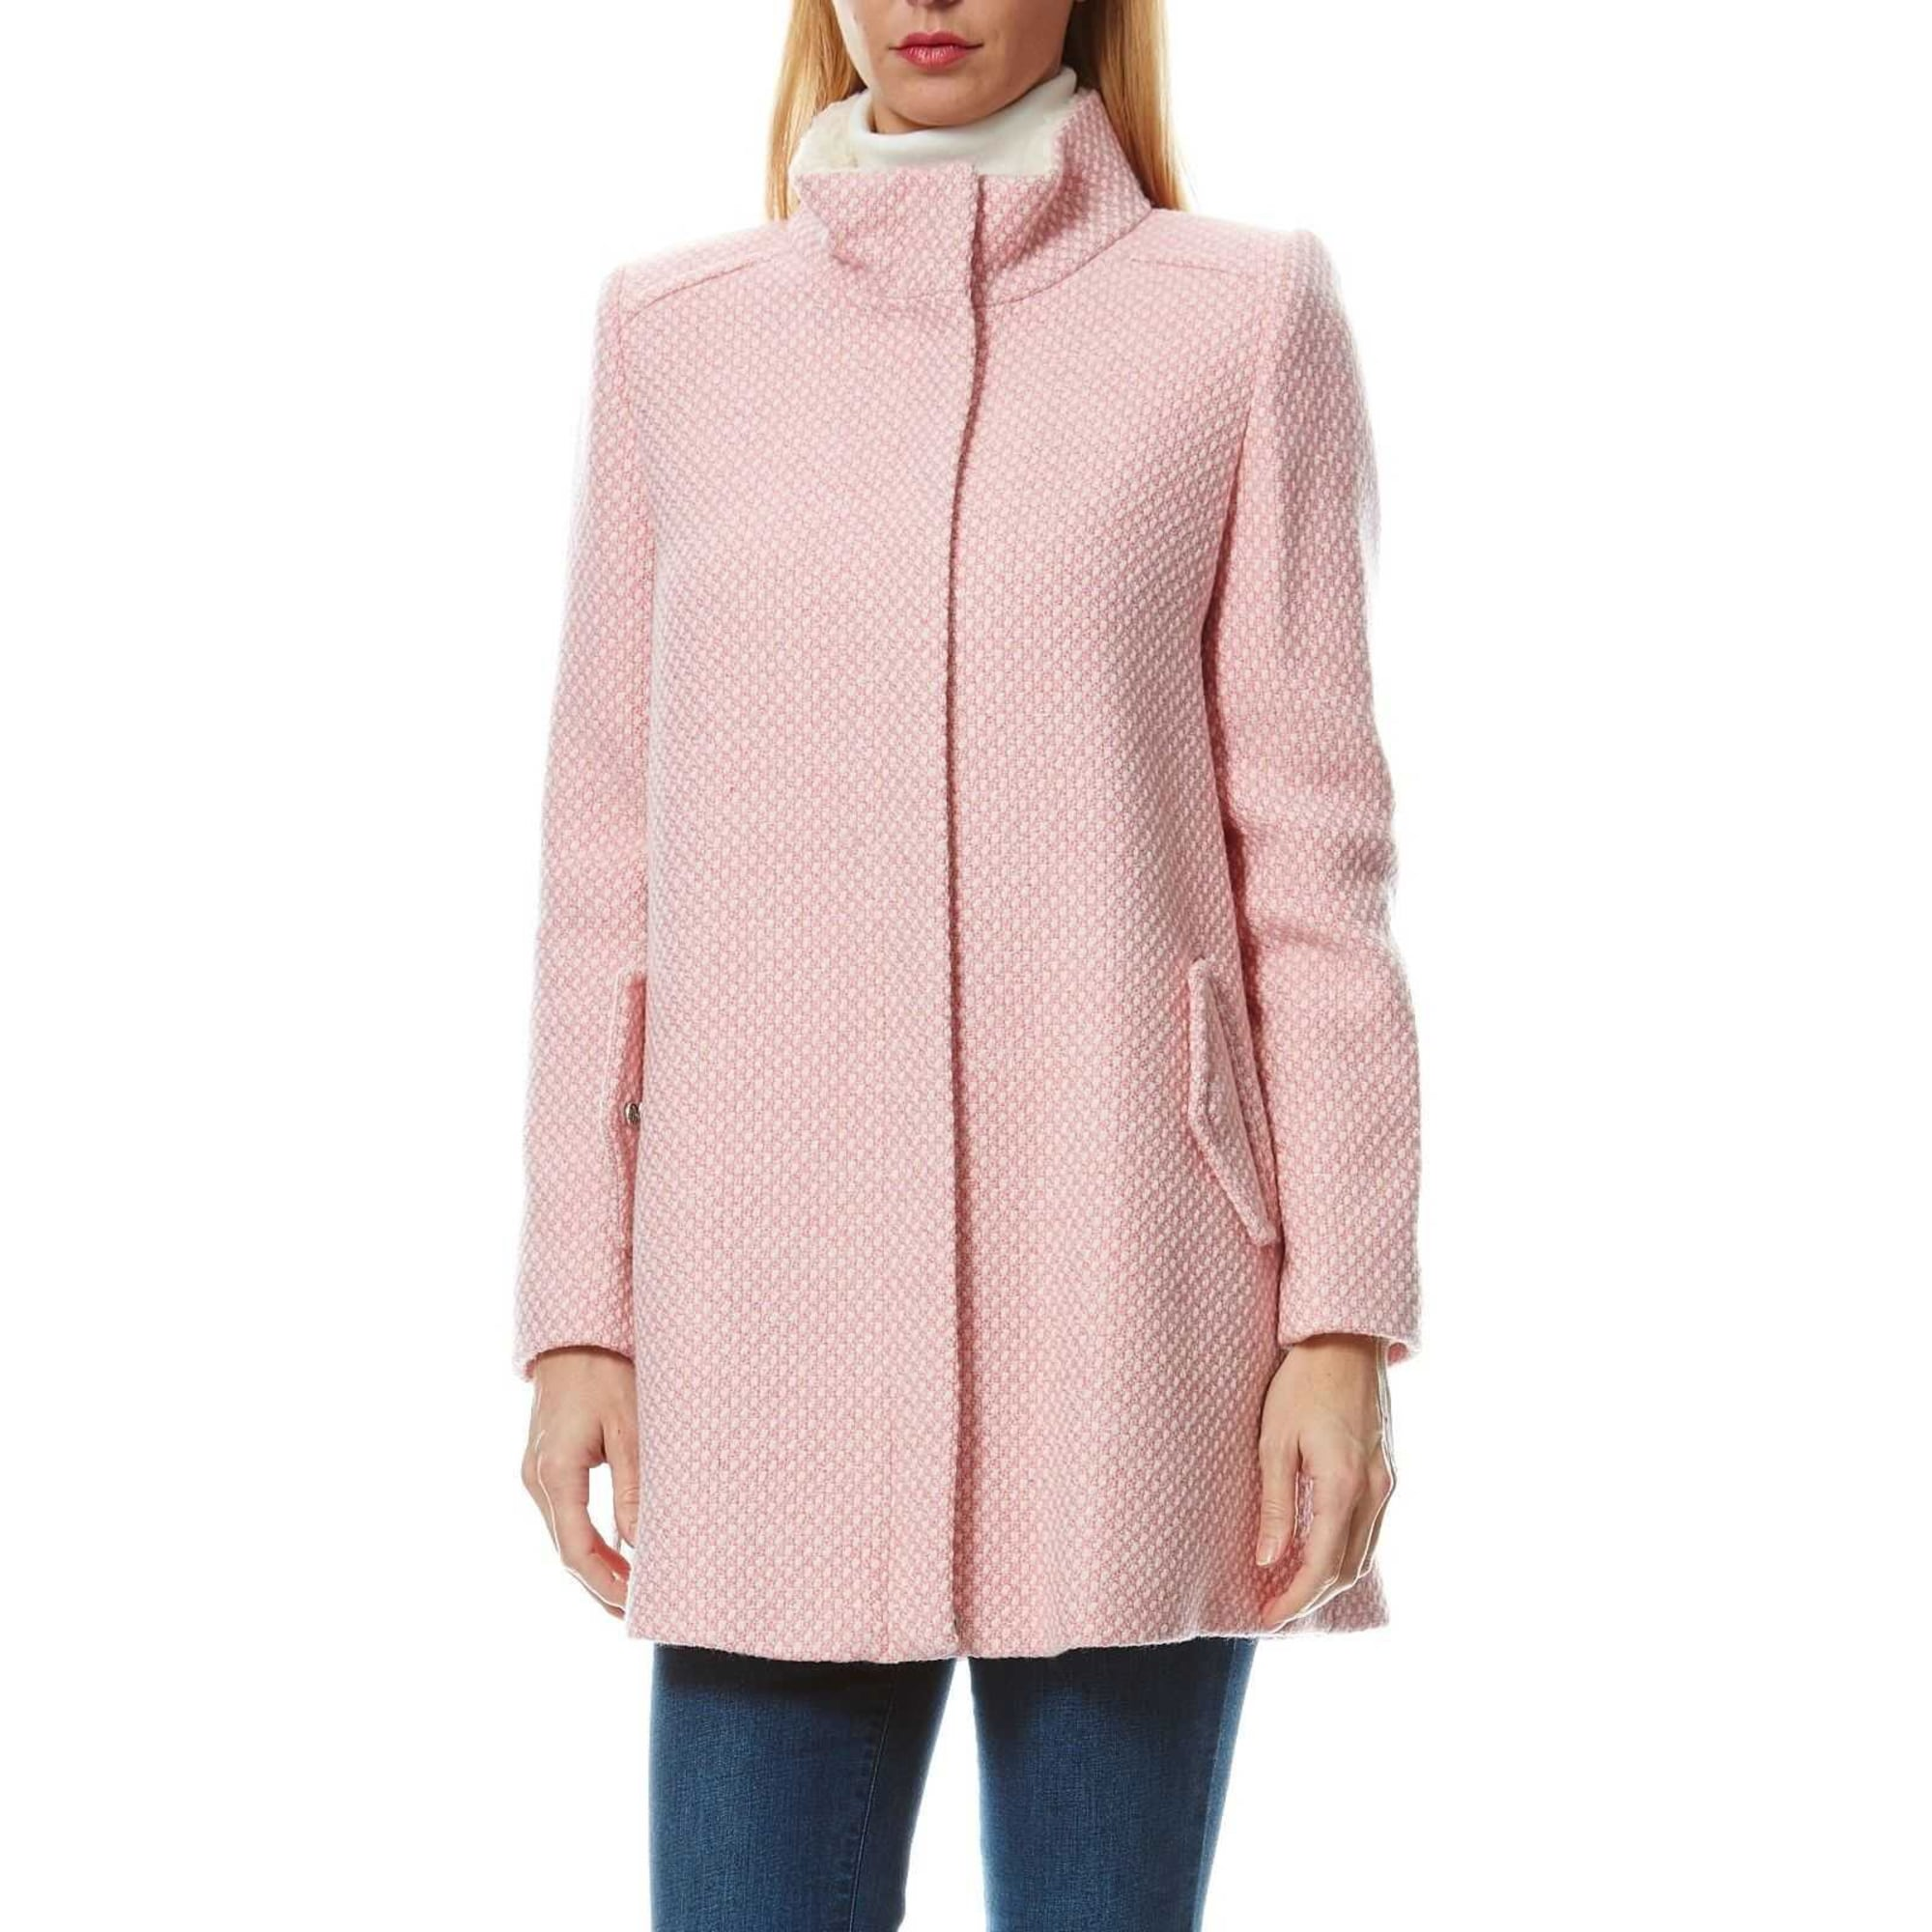 manteau rose naf naf